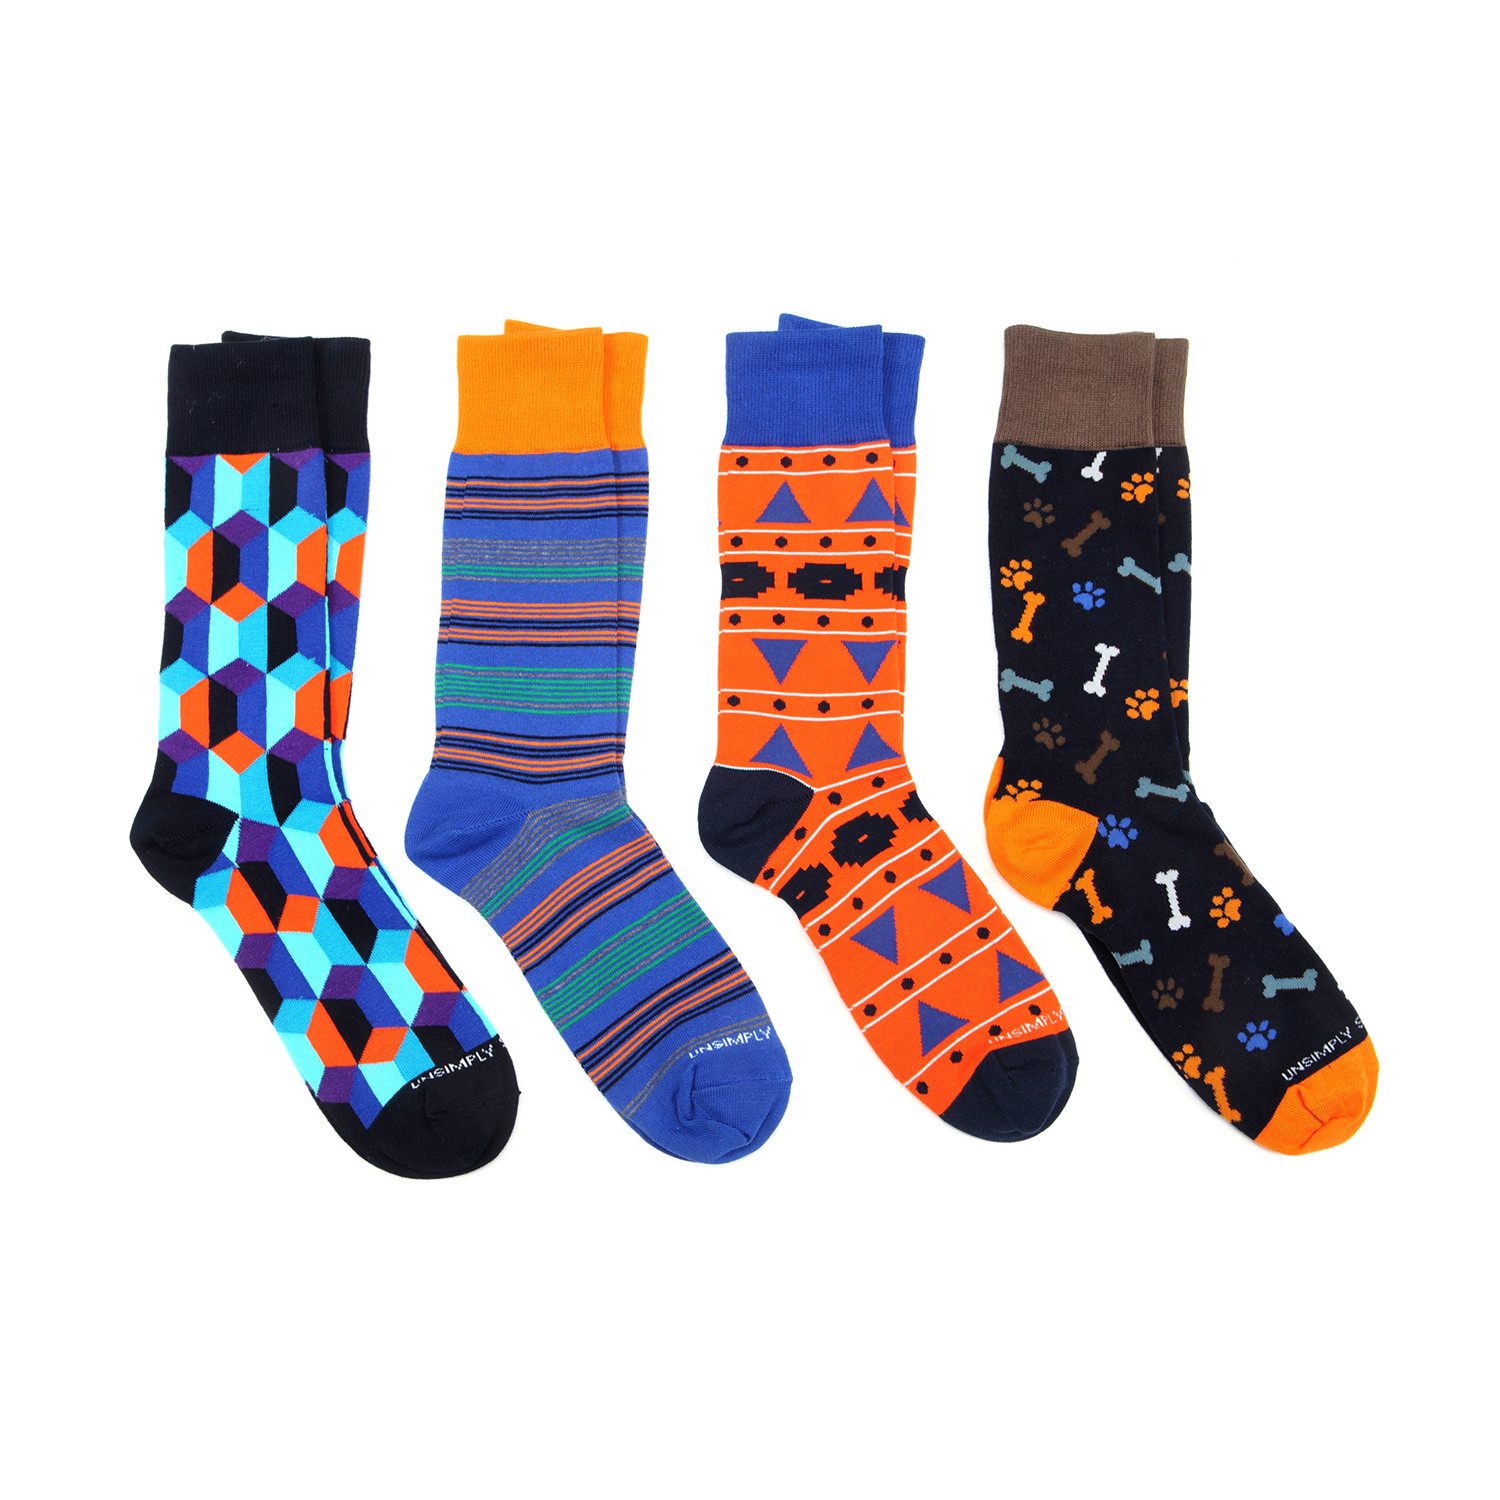 Dress socks dog bone pack of 4 unsimply stitched touch of